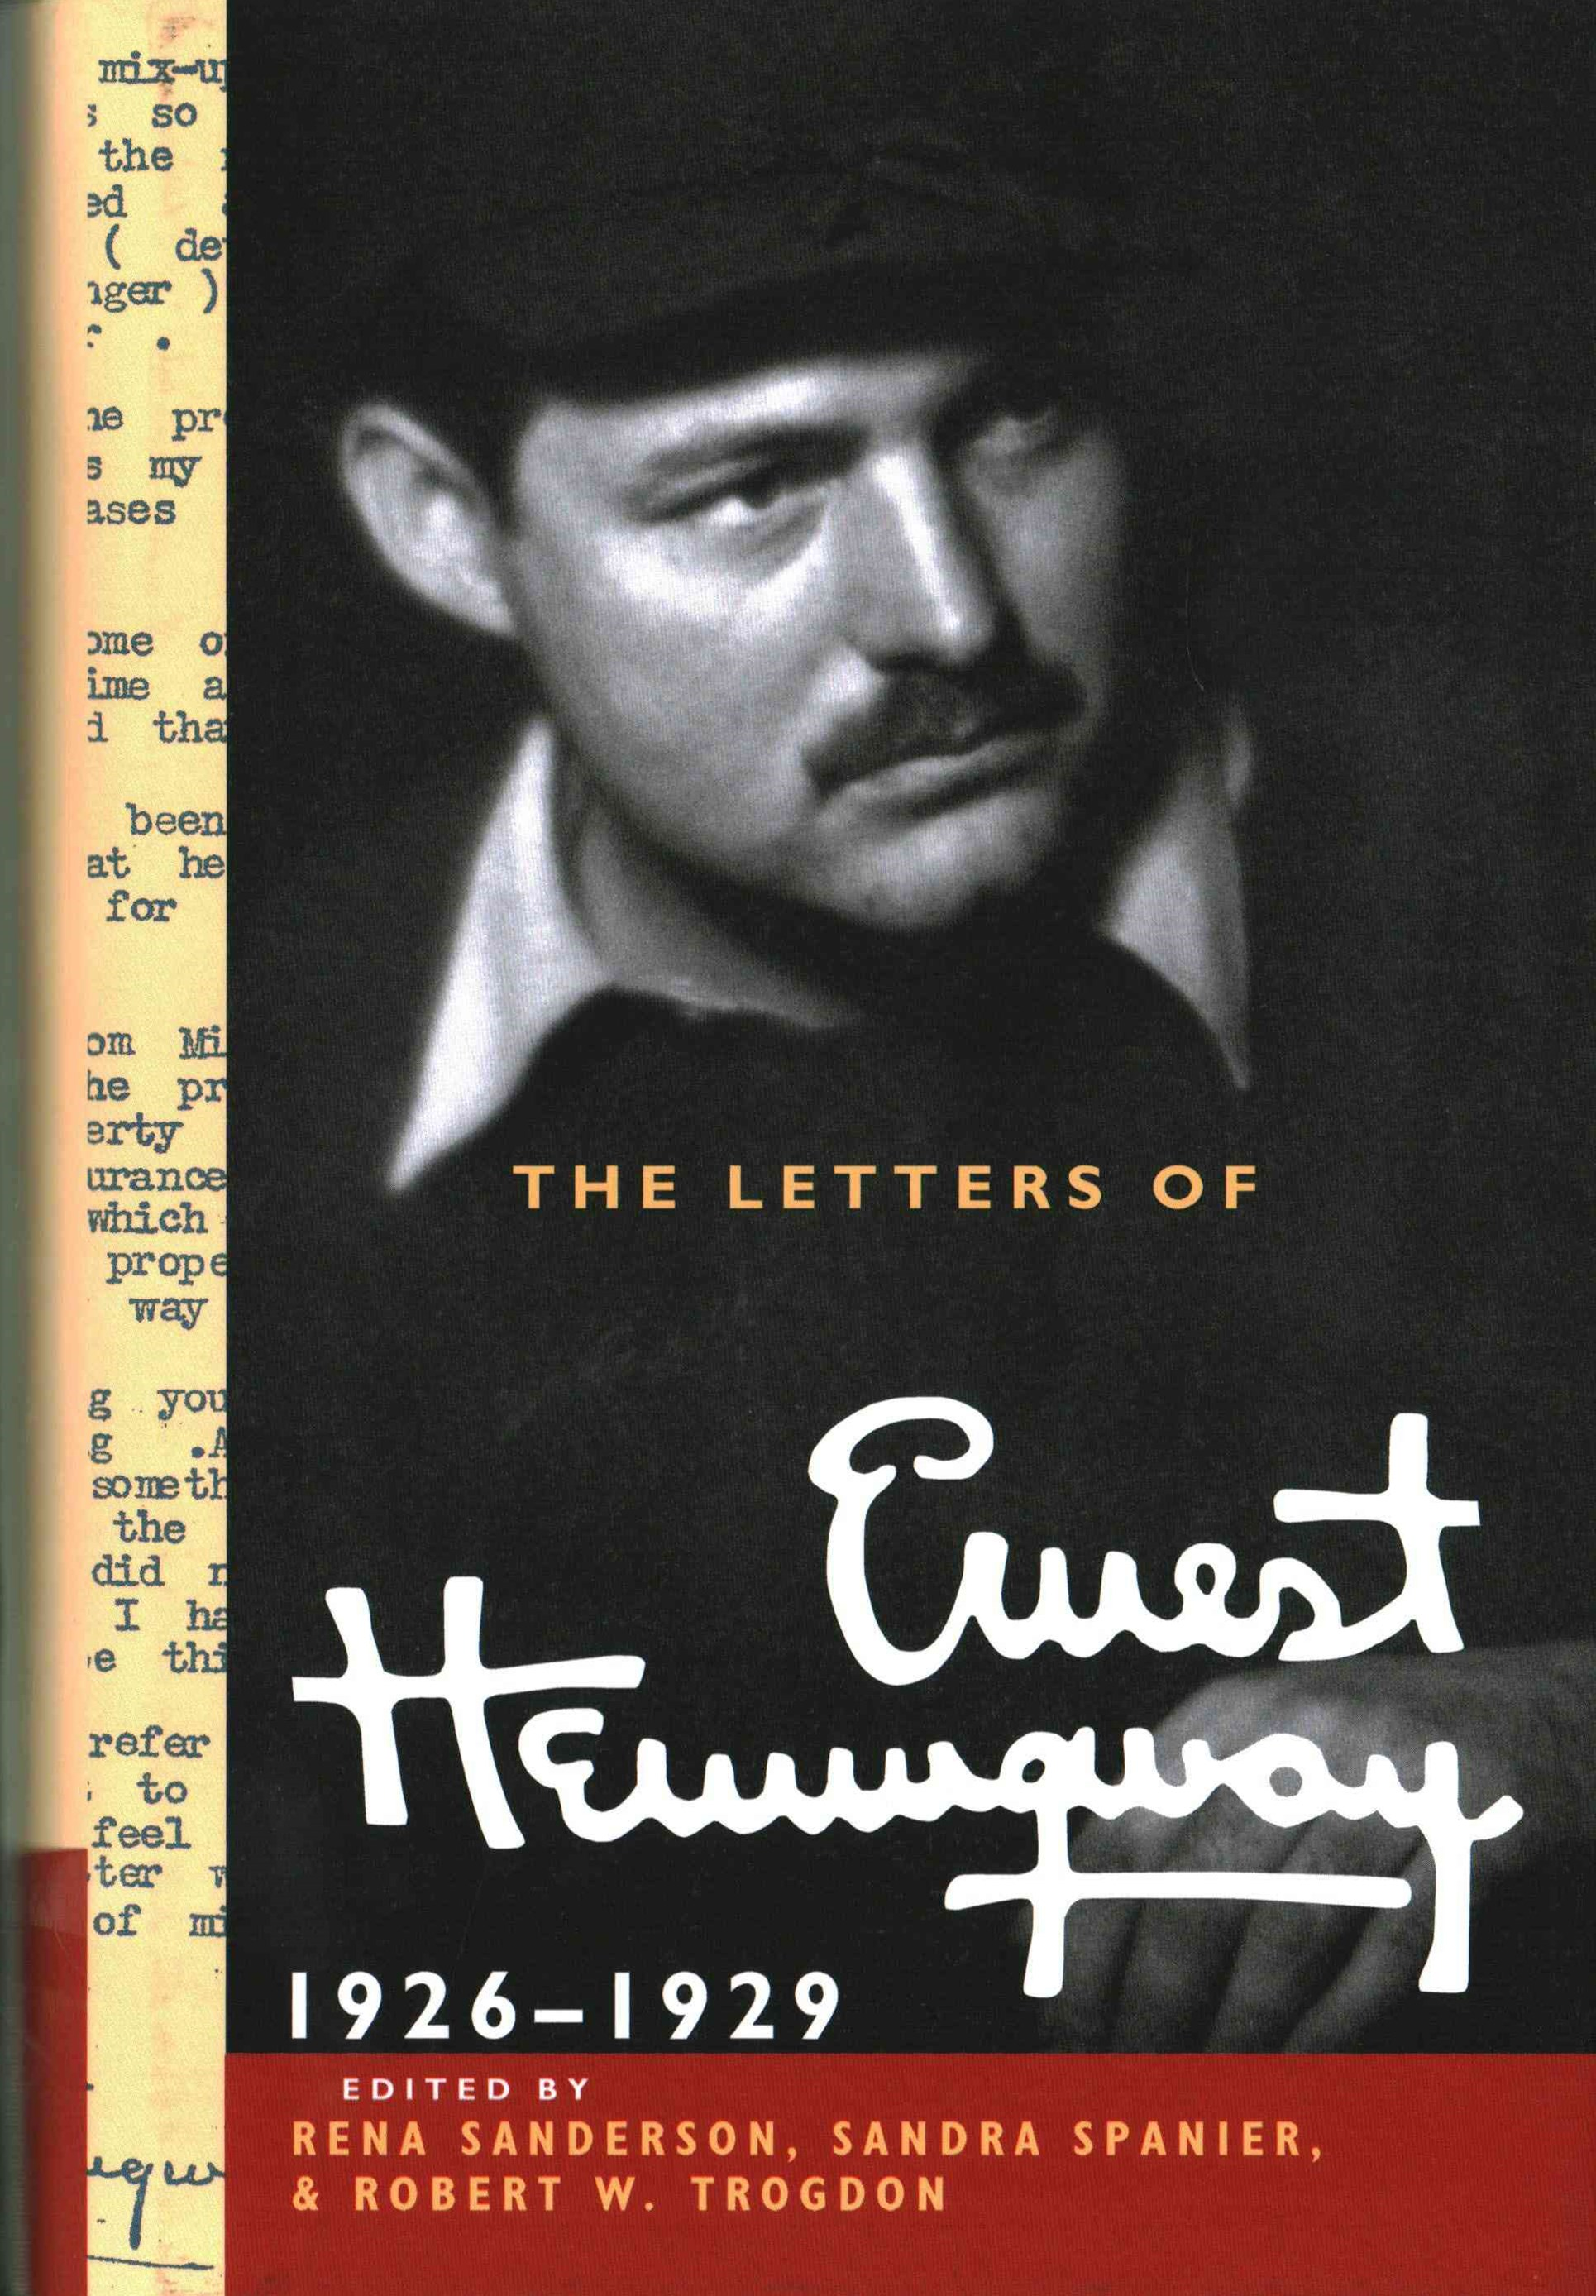 The Letters of Ernest Hemingway, 1926-1929